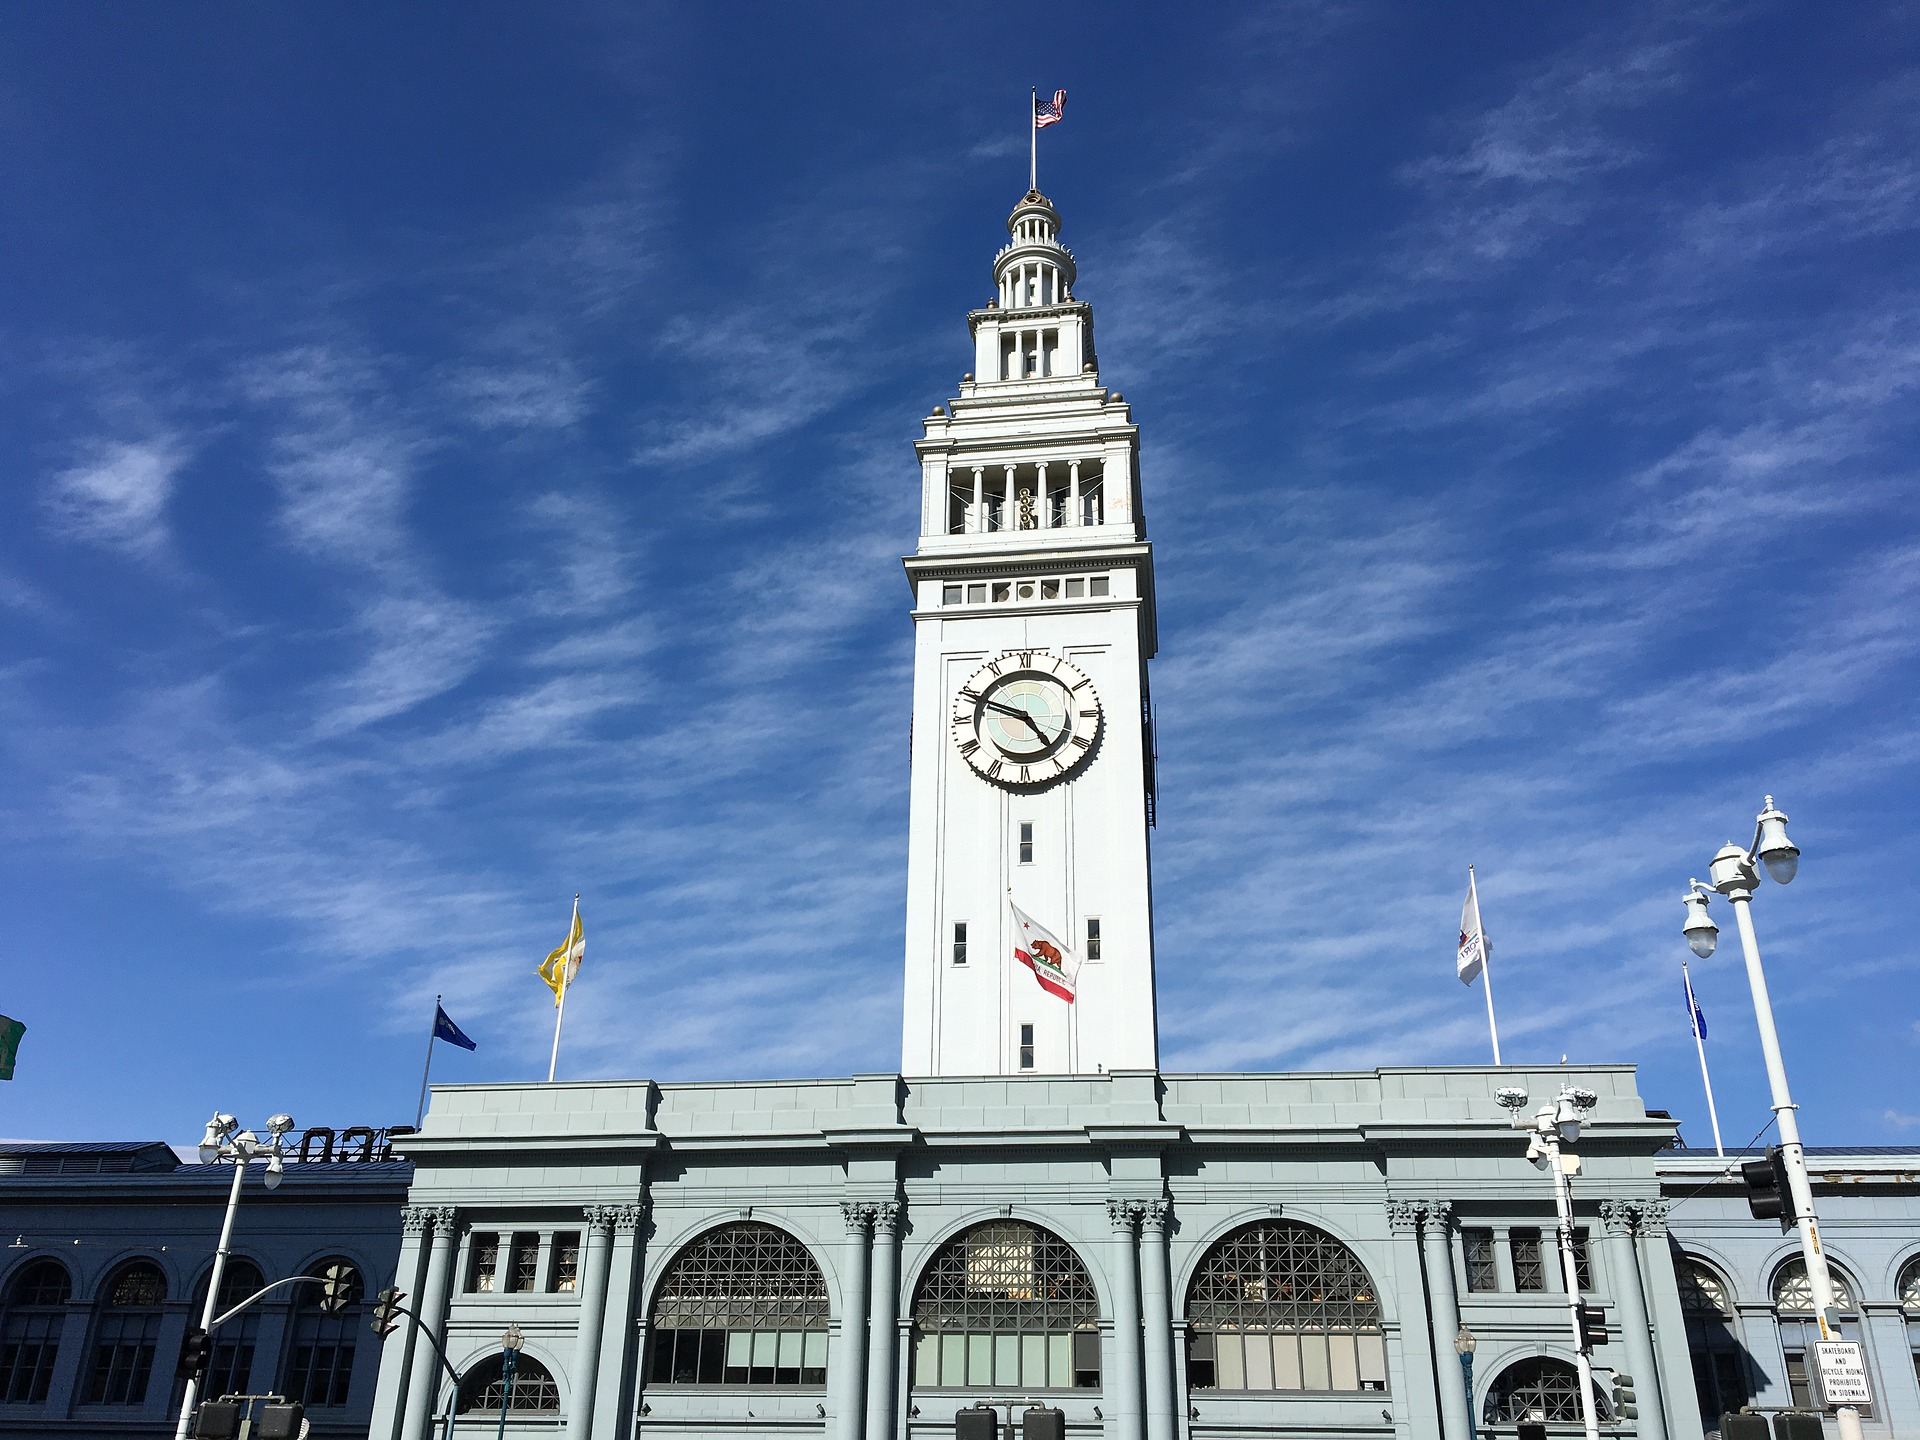 Ferry Building, San Francisco, CA